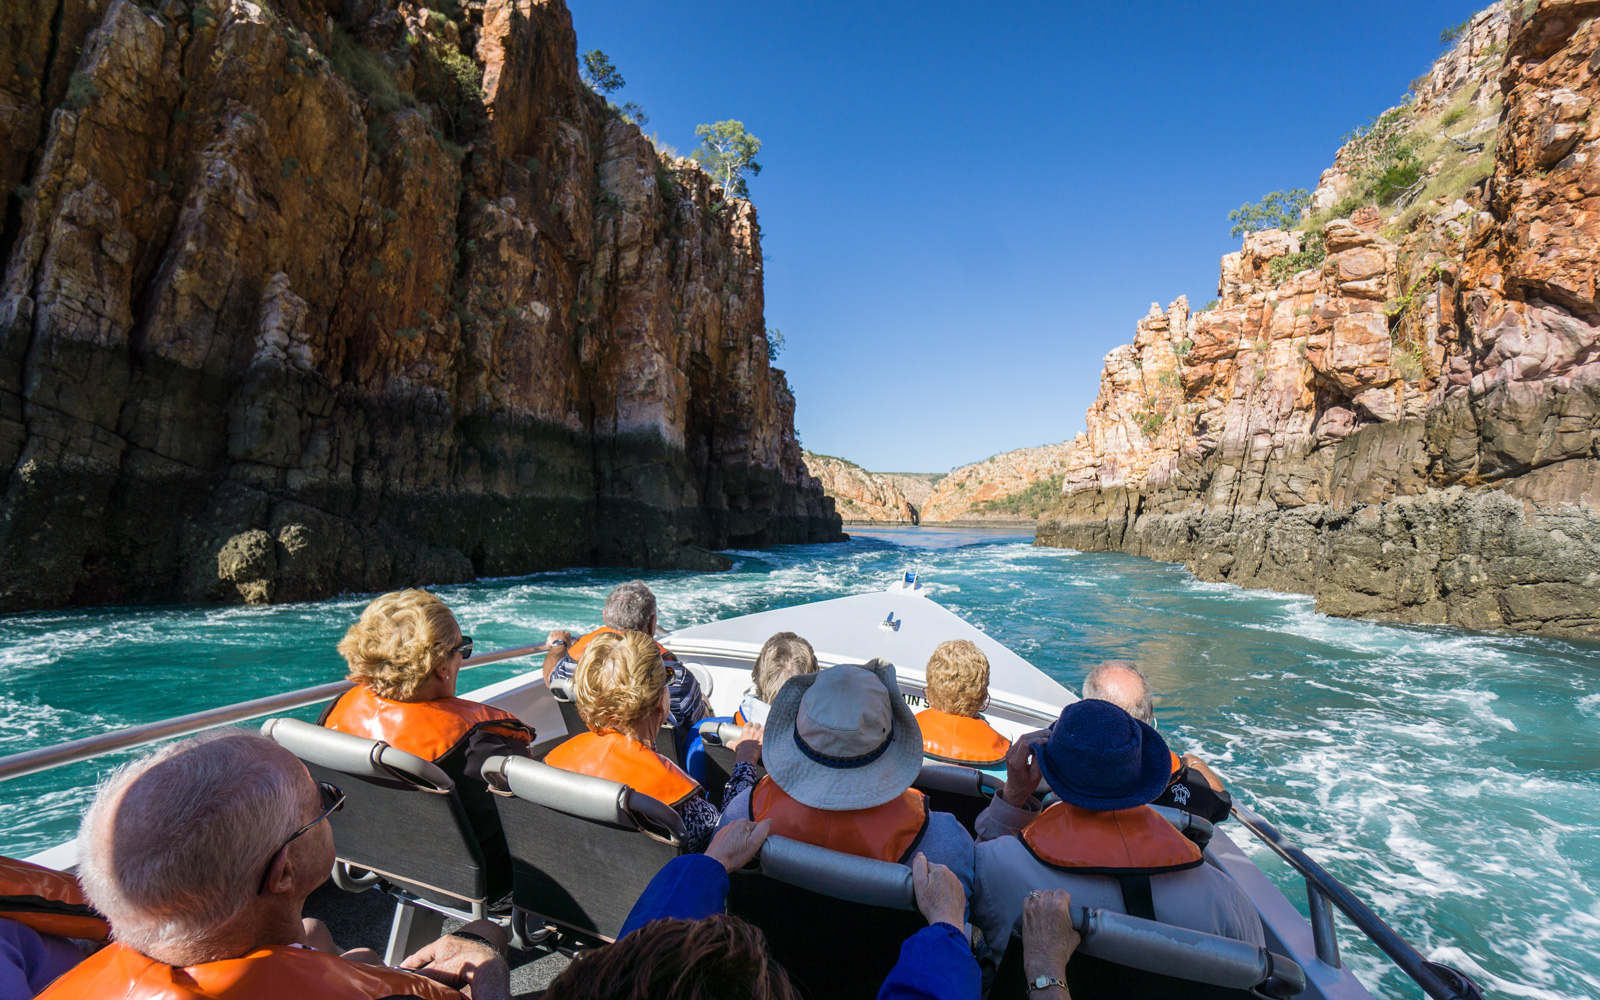 Tourists can take a tour through the Horizontal Falls on a multi-engined rigid inflatable boat.